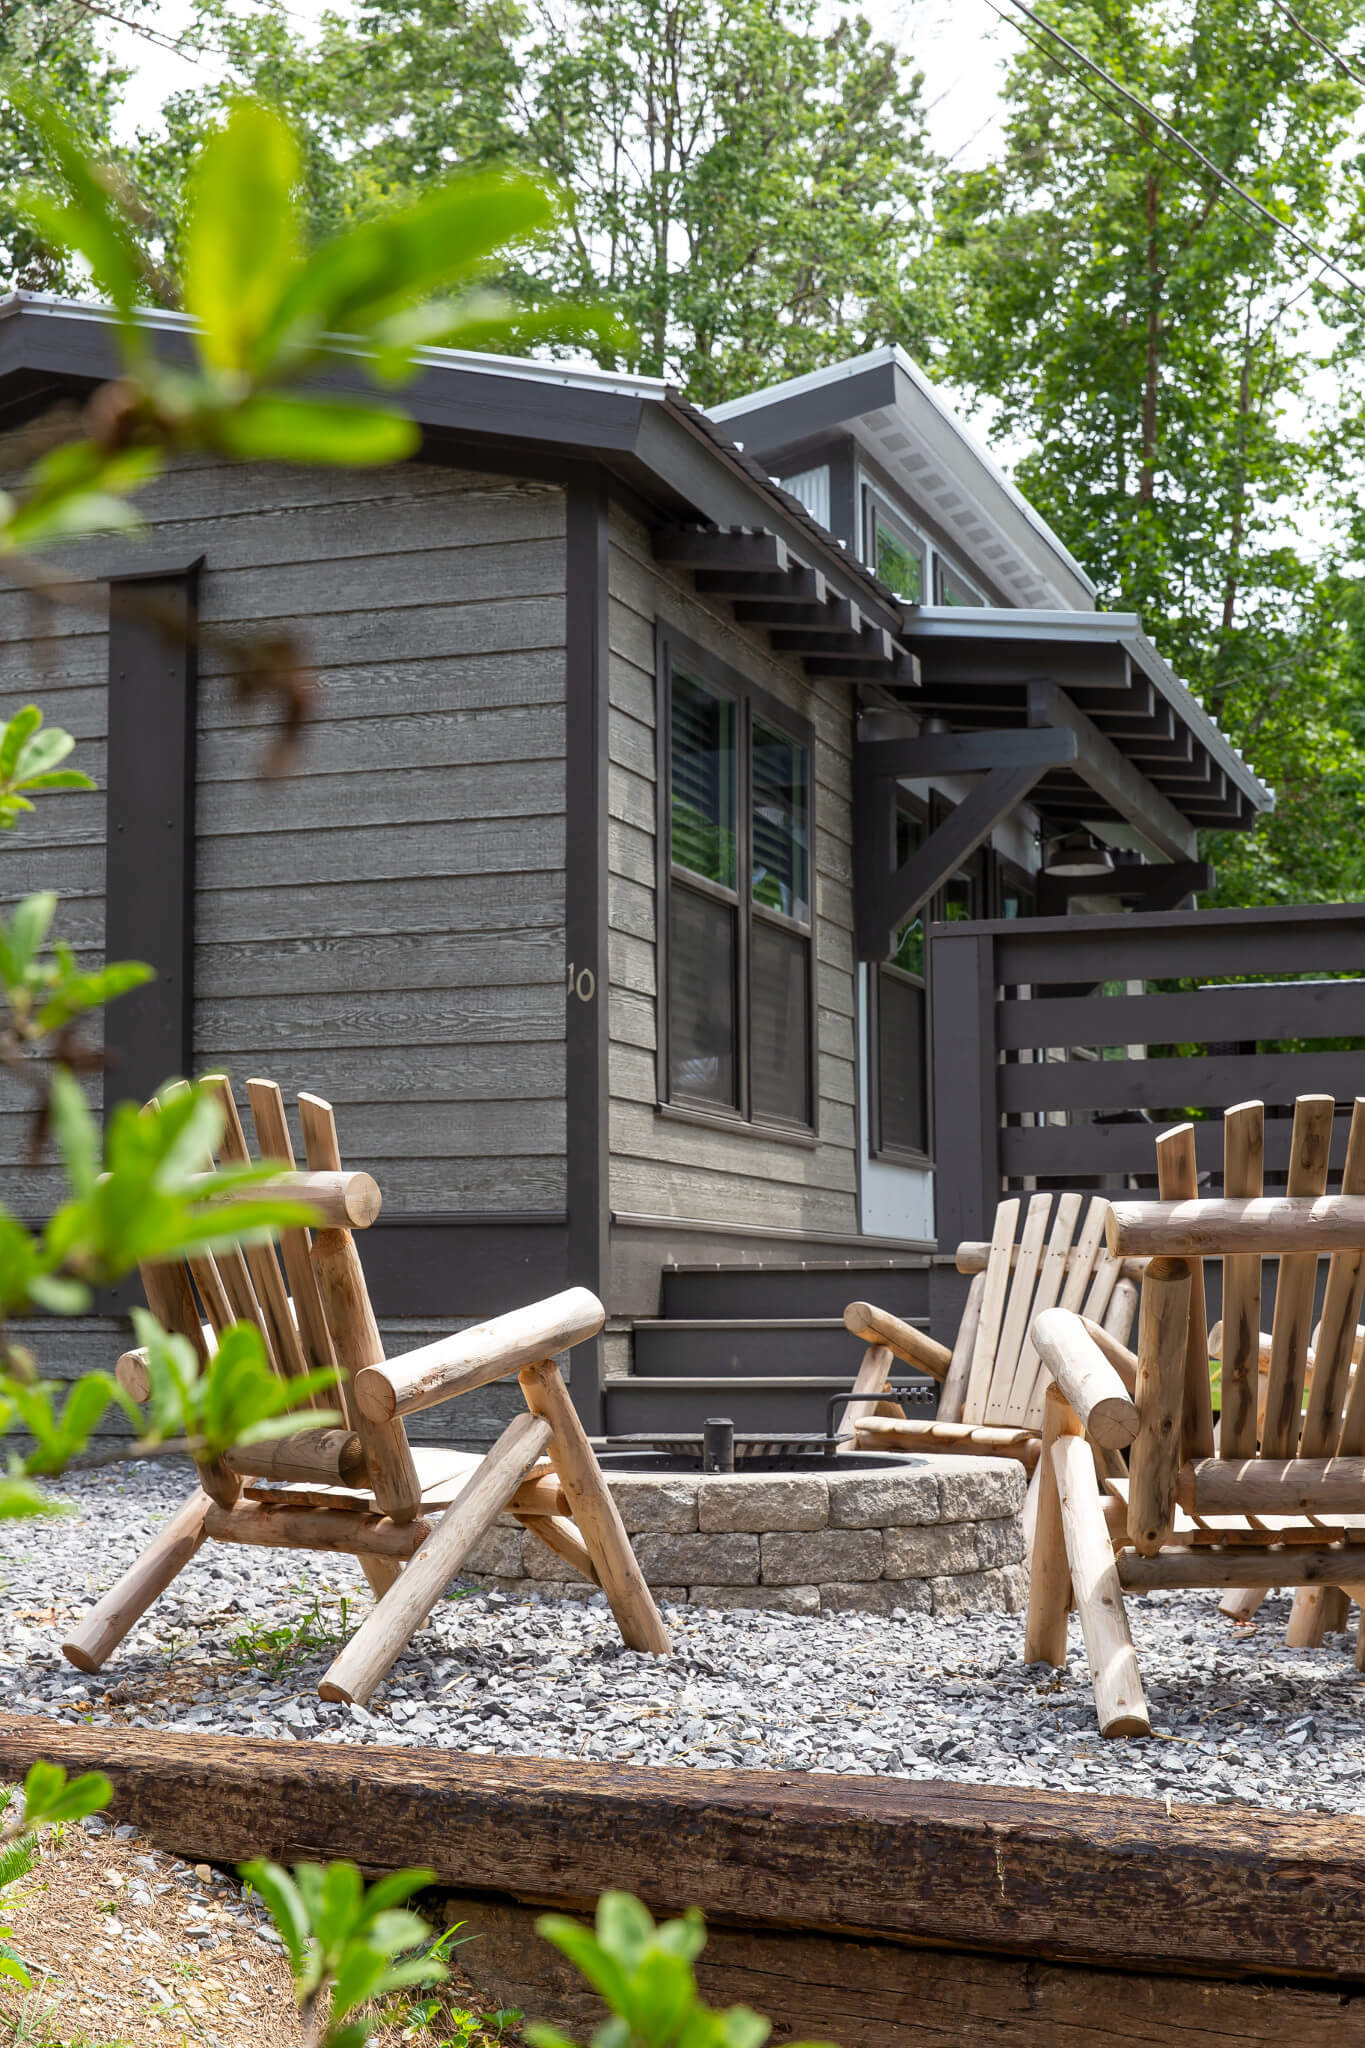 The Townsend Tiny Home in Smokies - Fire Pit and Seating Area